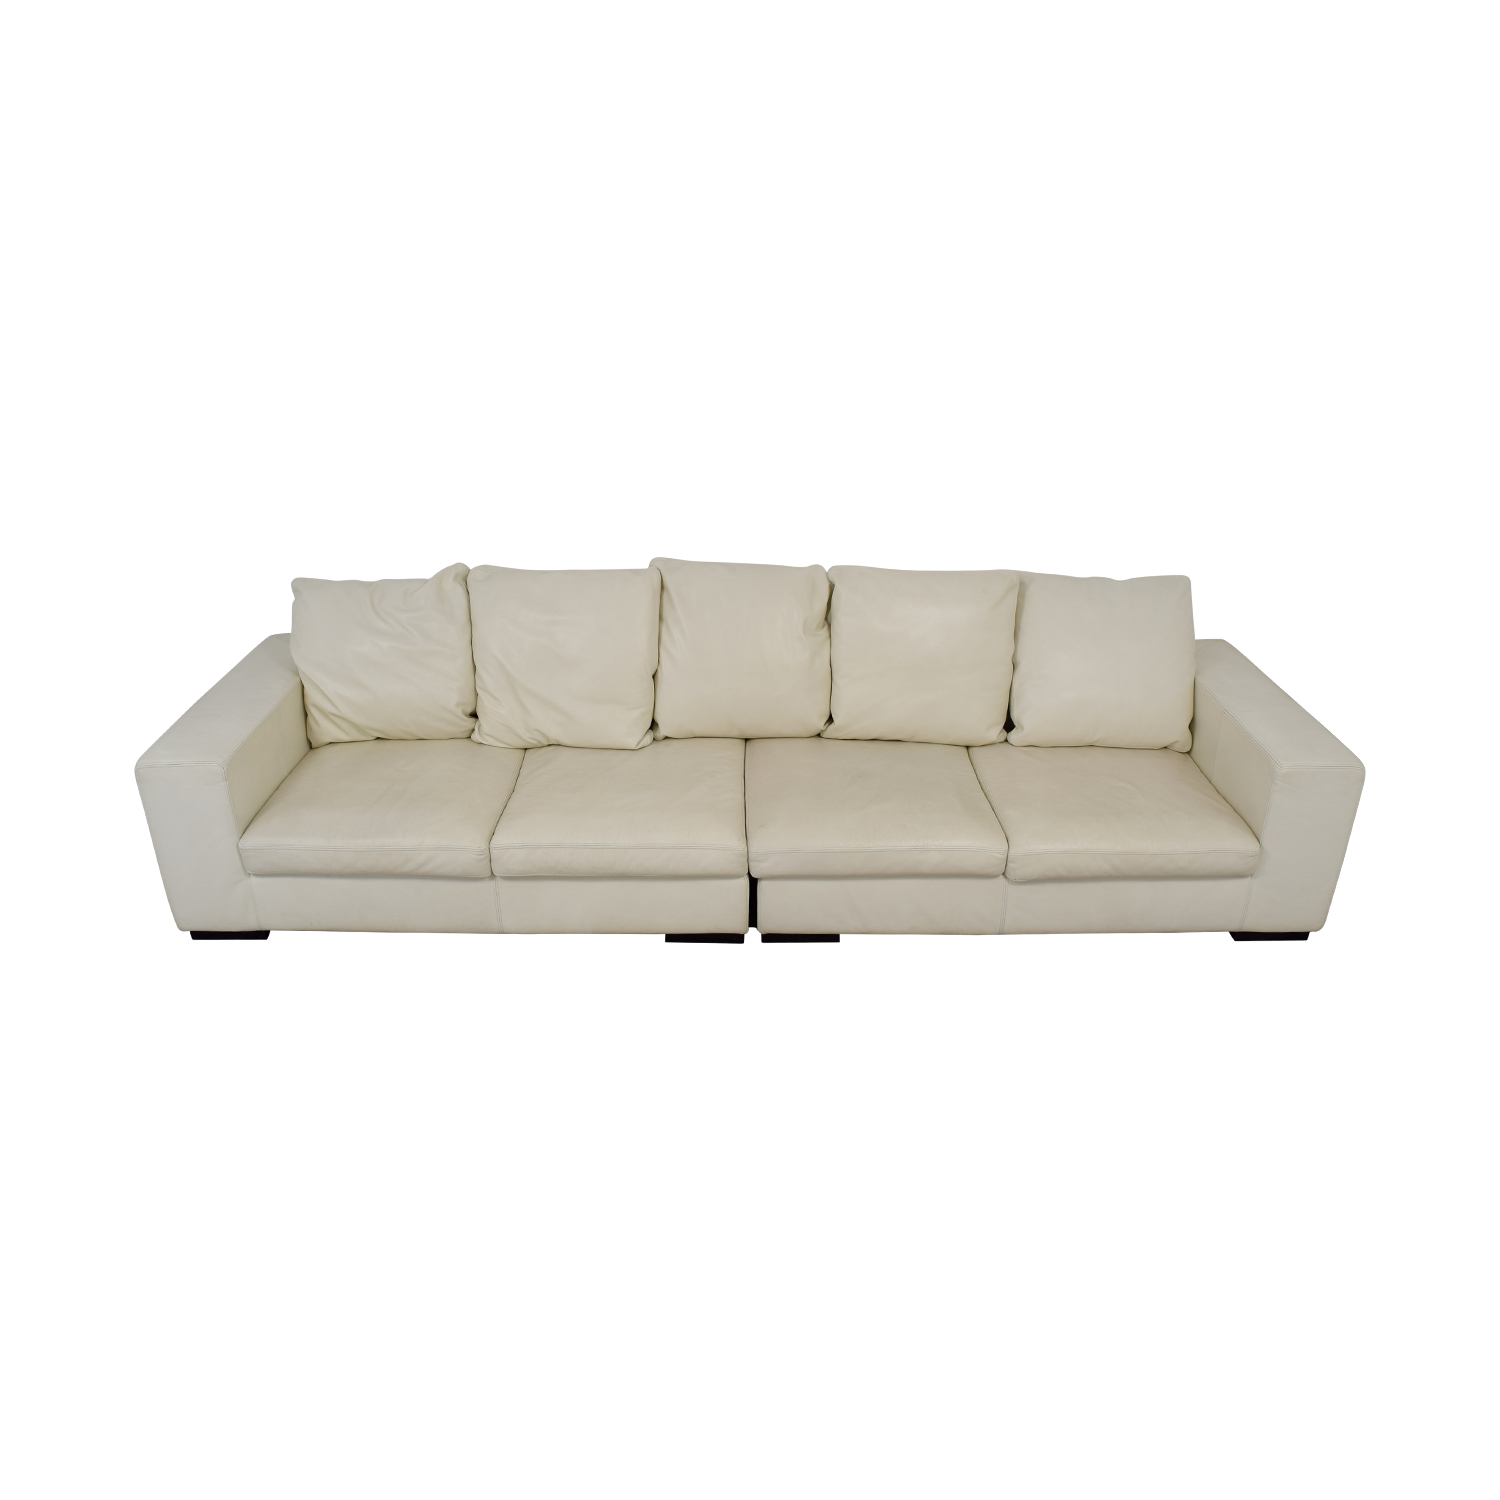 Giovanni Erba White Leather Modular Sofa